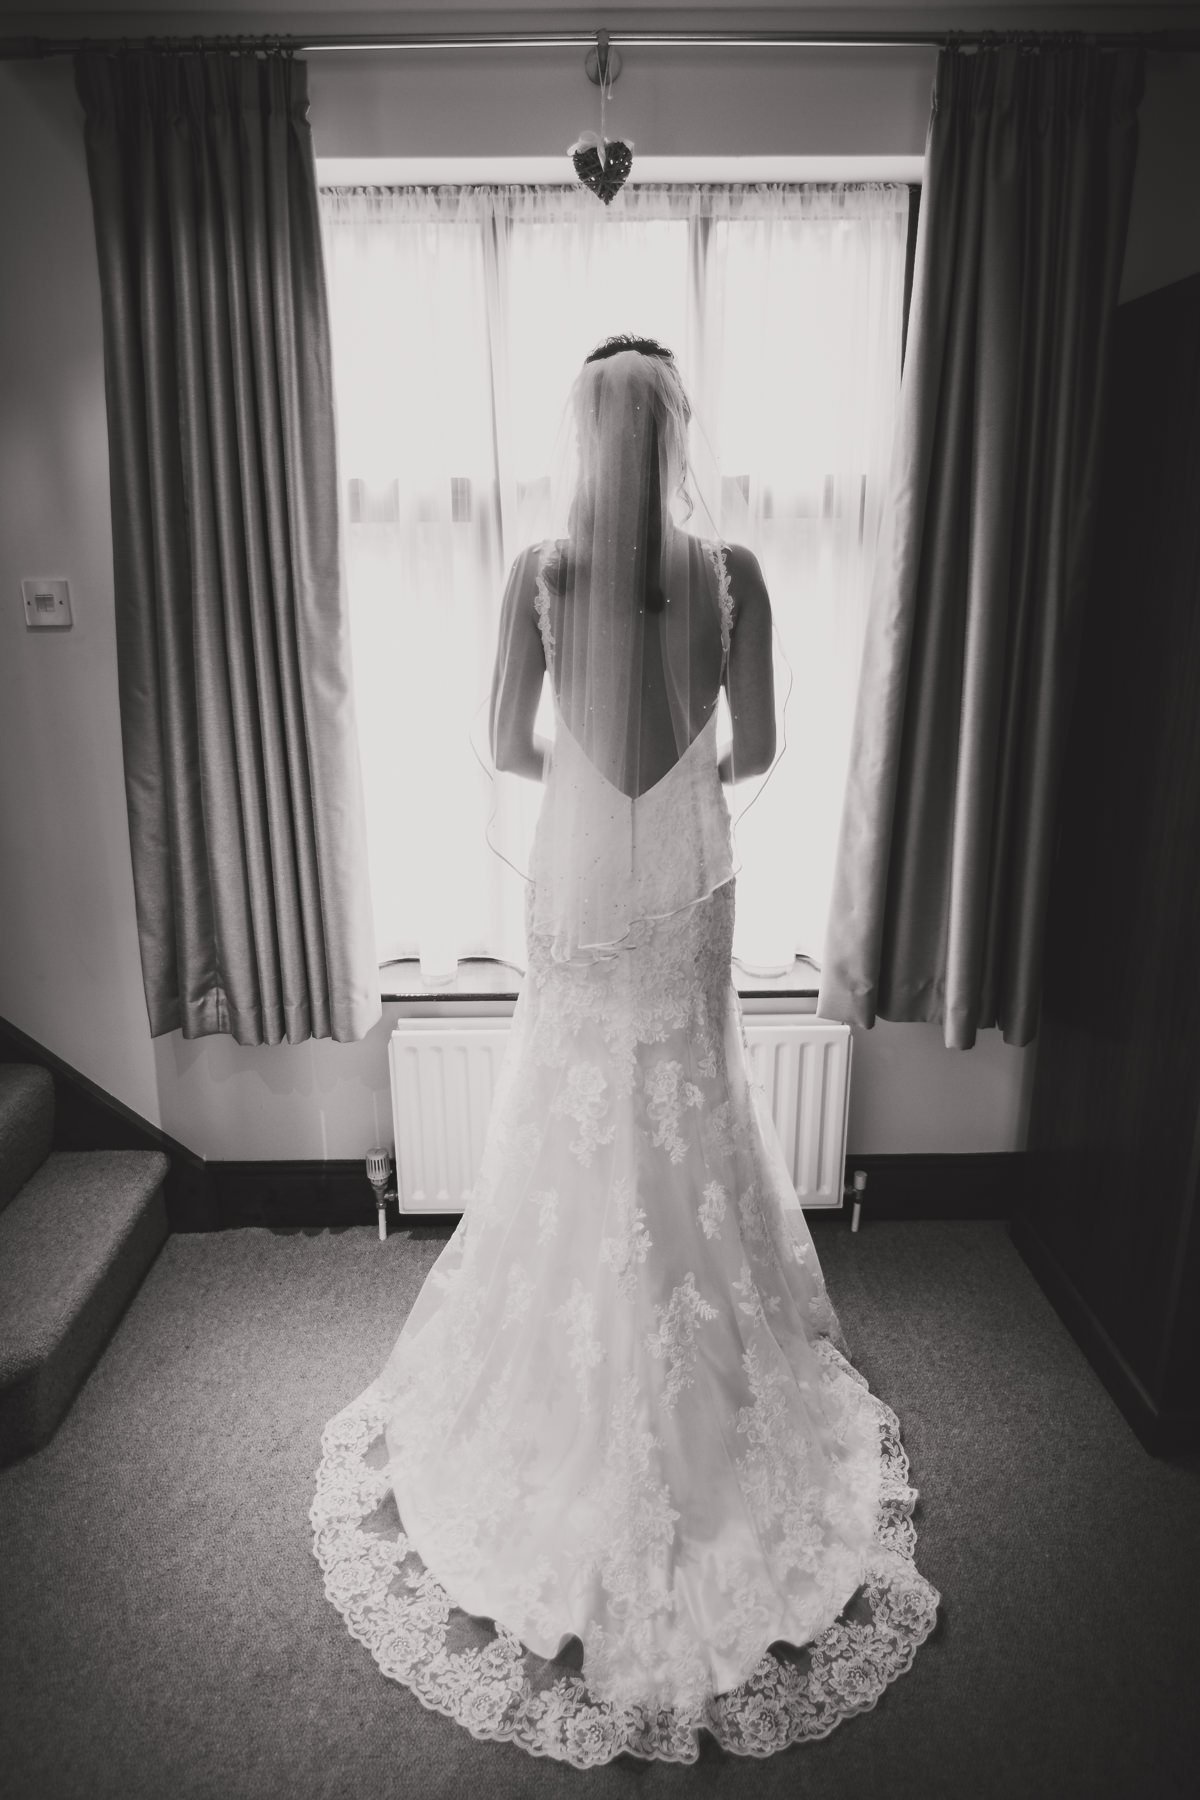 bride in dress standing in front of window